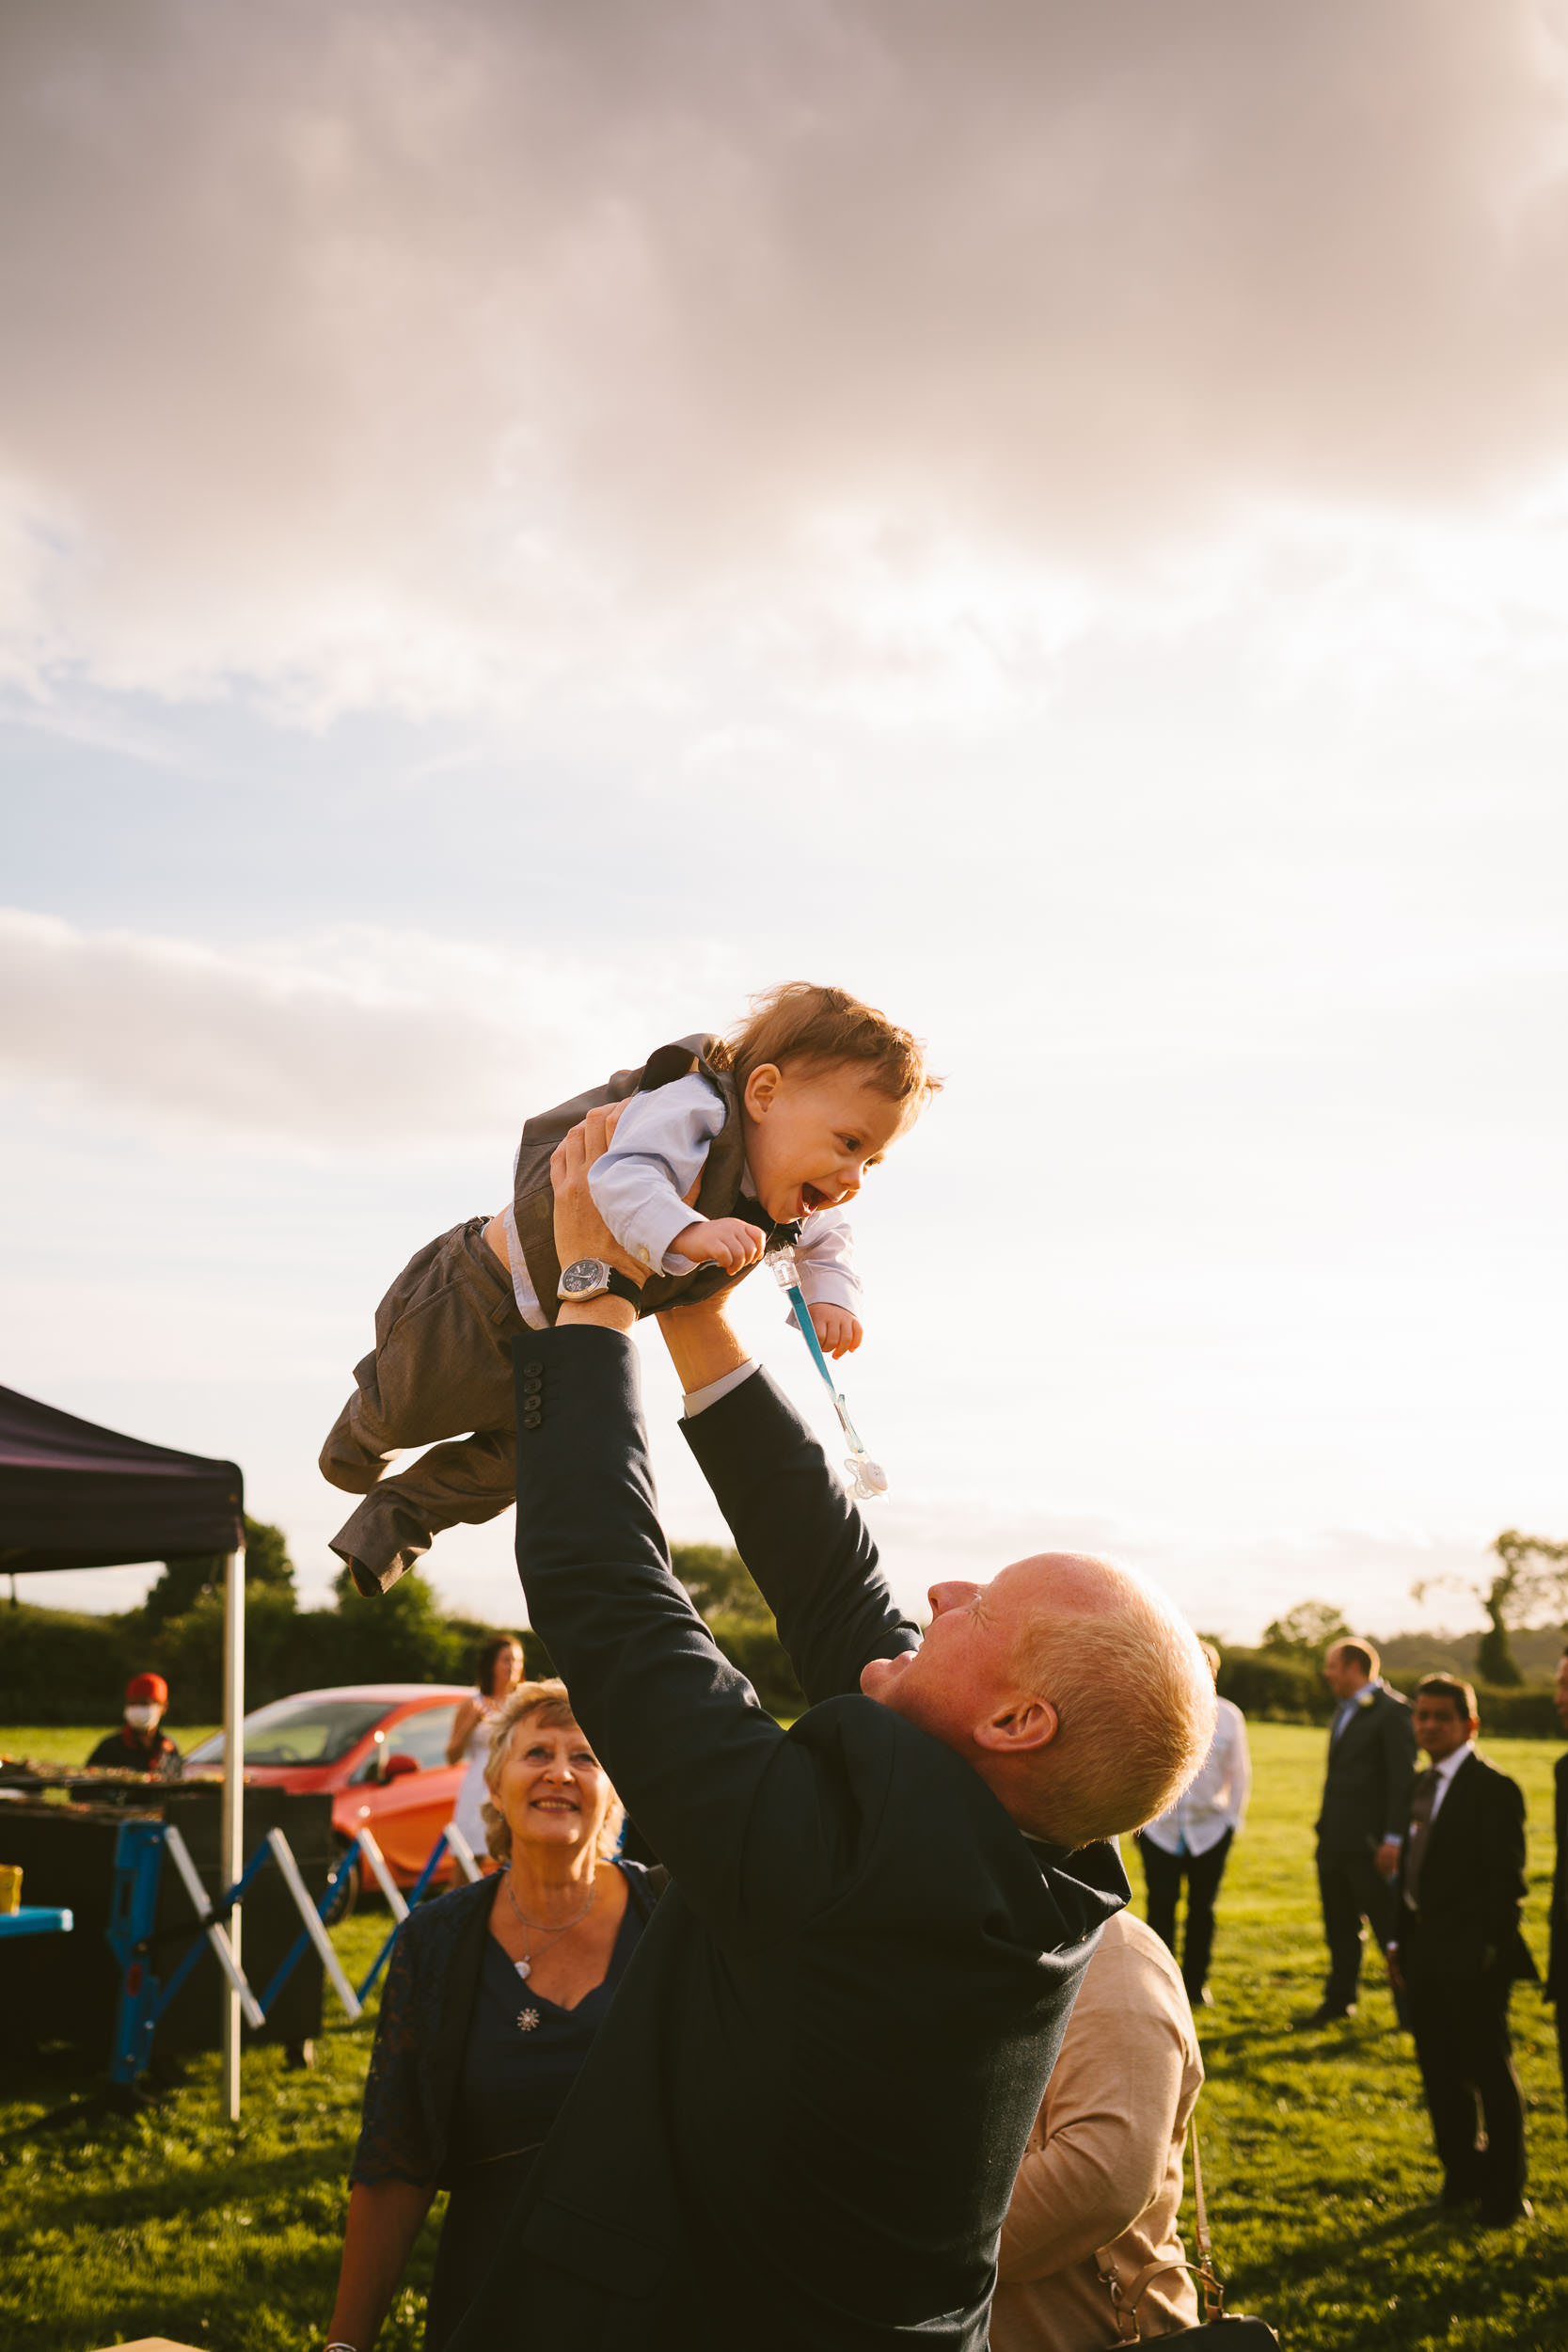 Wedding guest throws laughing baby in the air